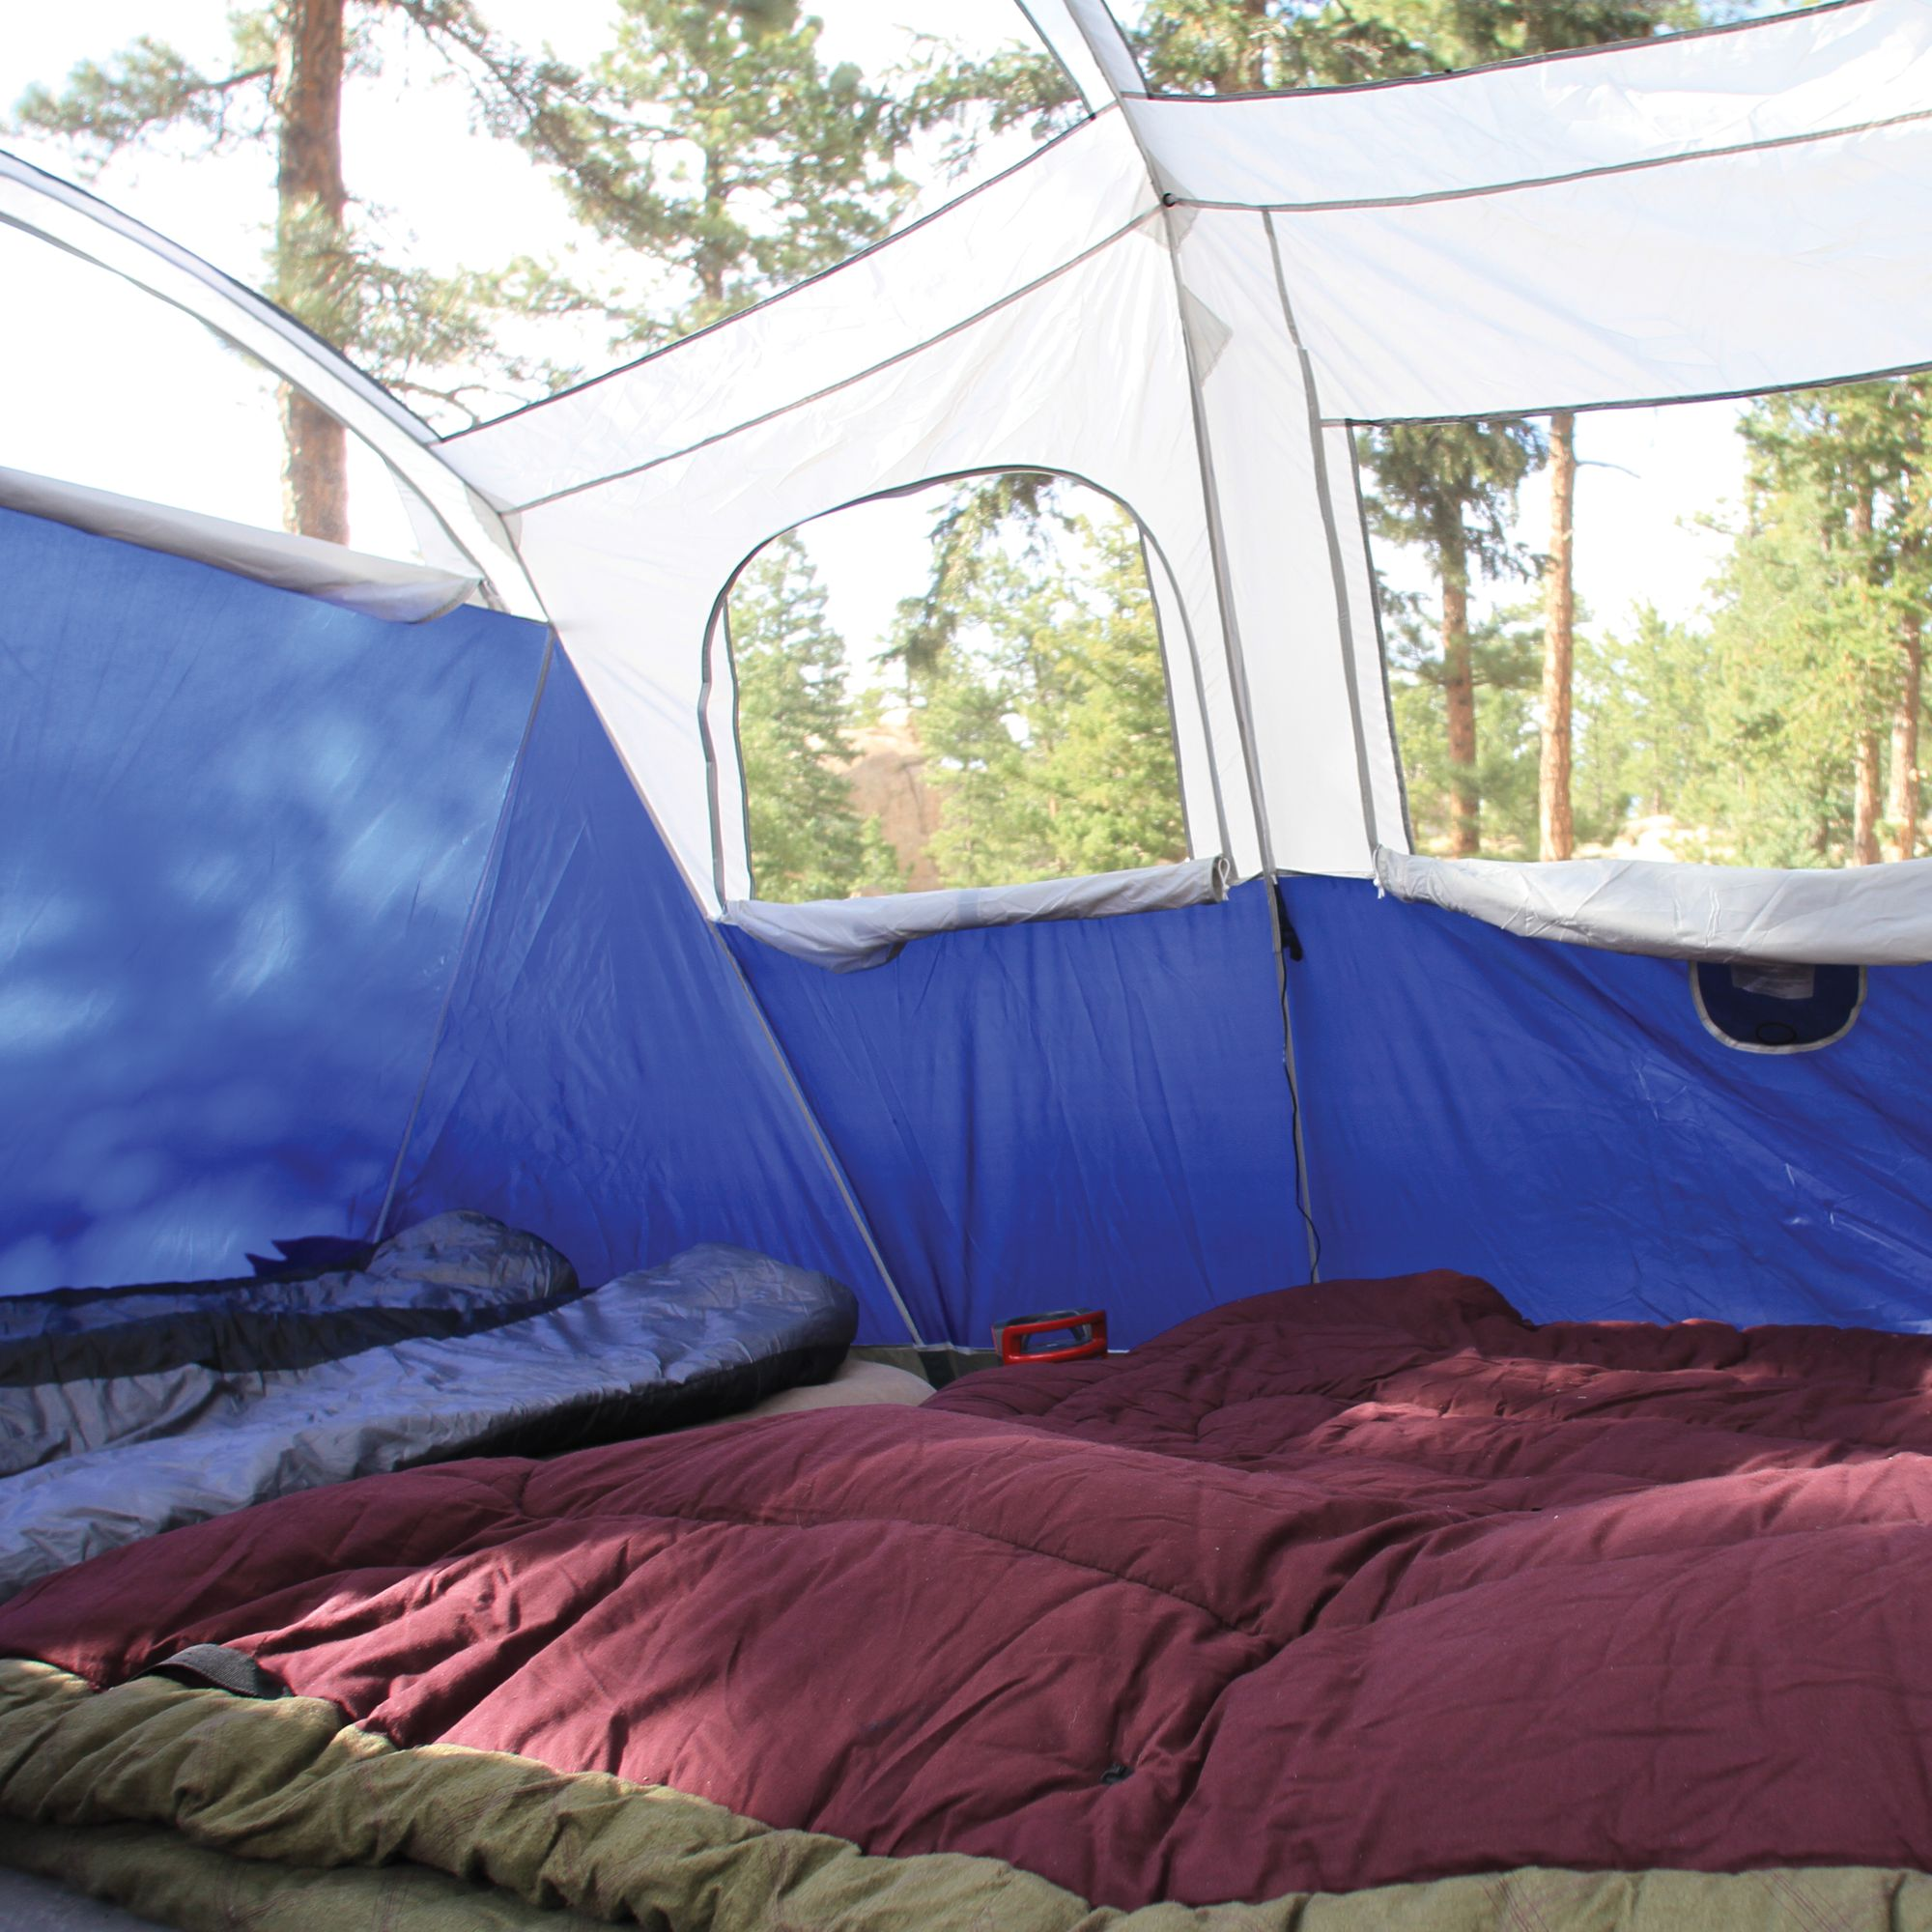 978cb8005b5 Elite WeatherMaster® 6-Person Lighted Tent with Screen Room image 5 ...